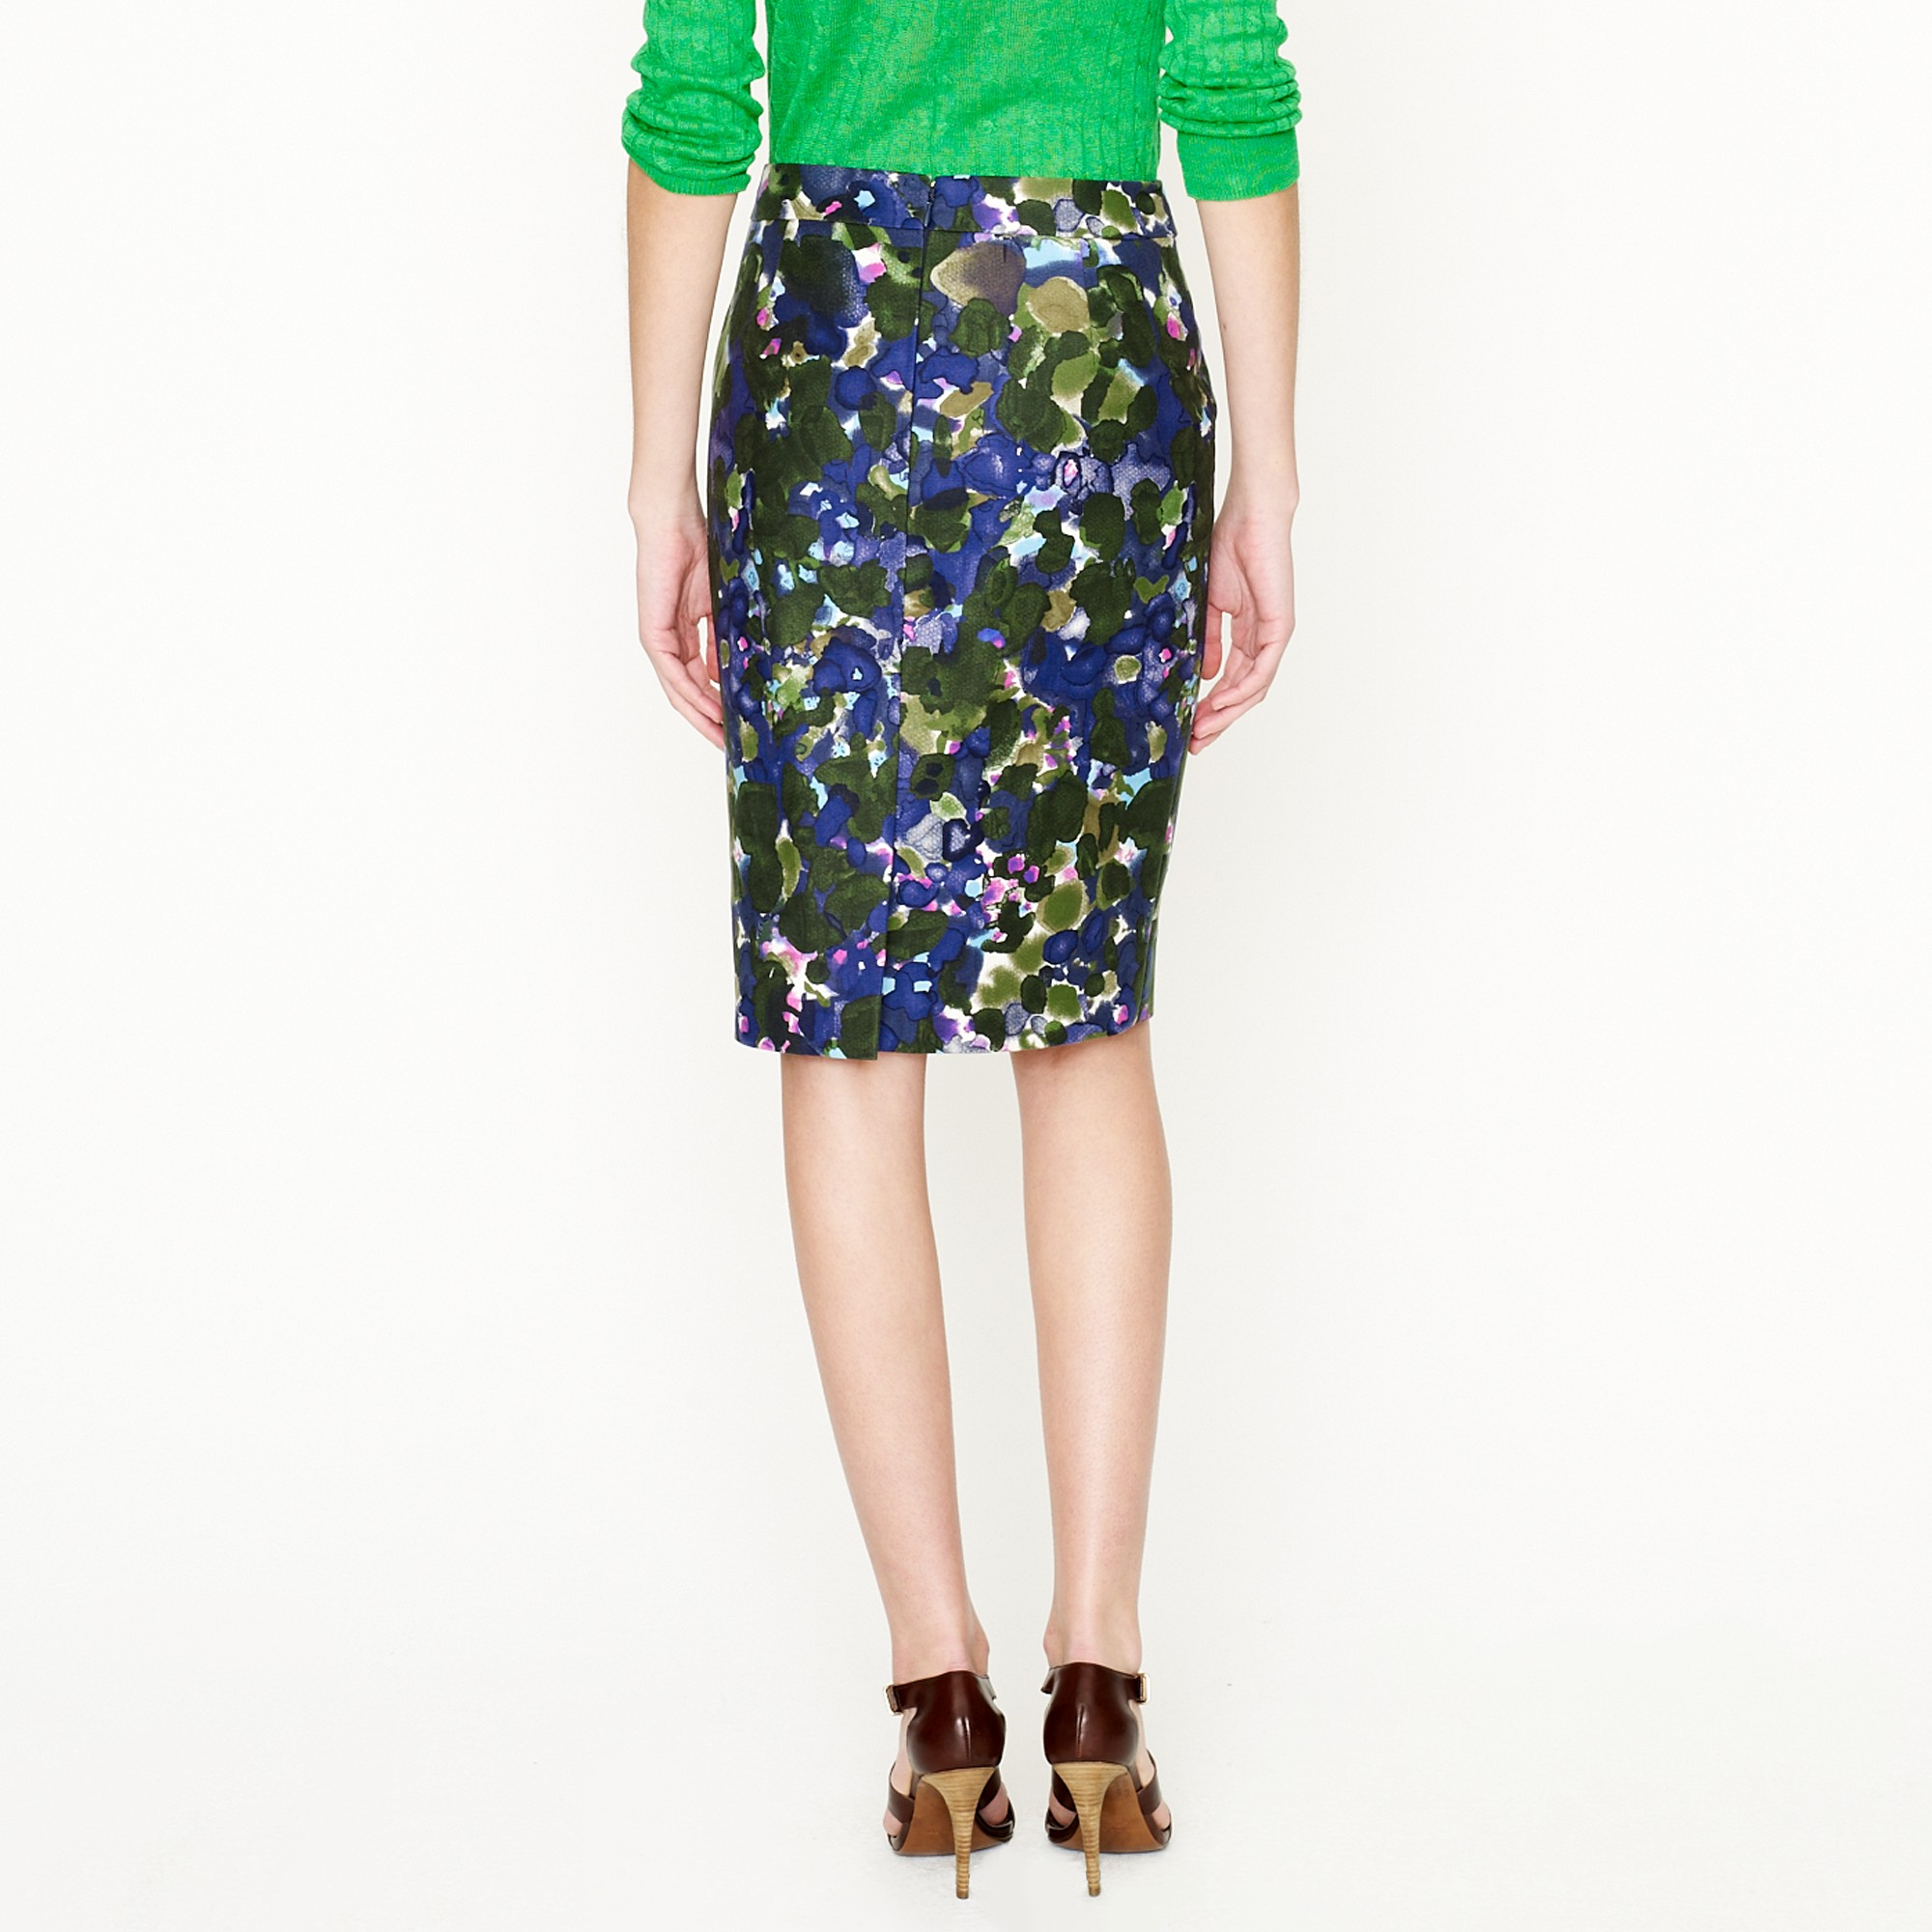 j crew no 2 pencil skirt in gardenshade floral in blue lyst